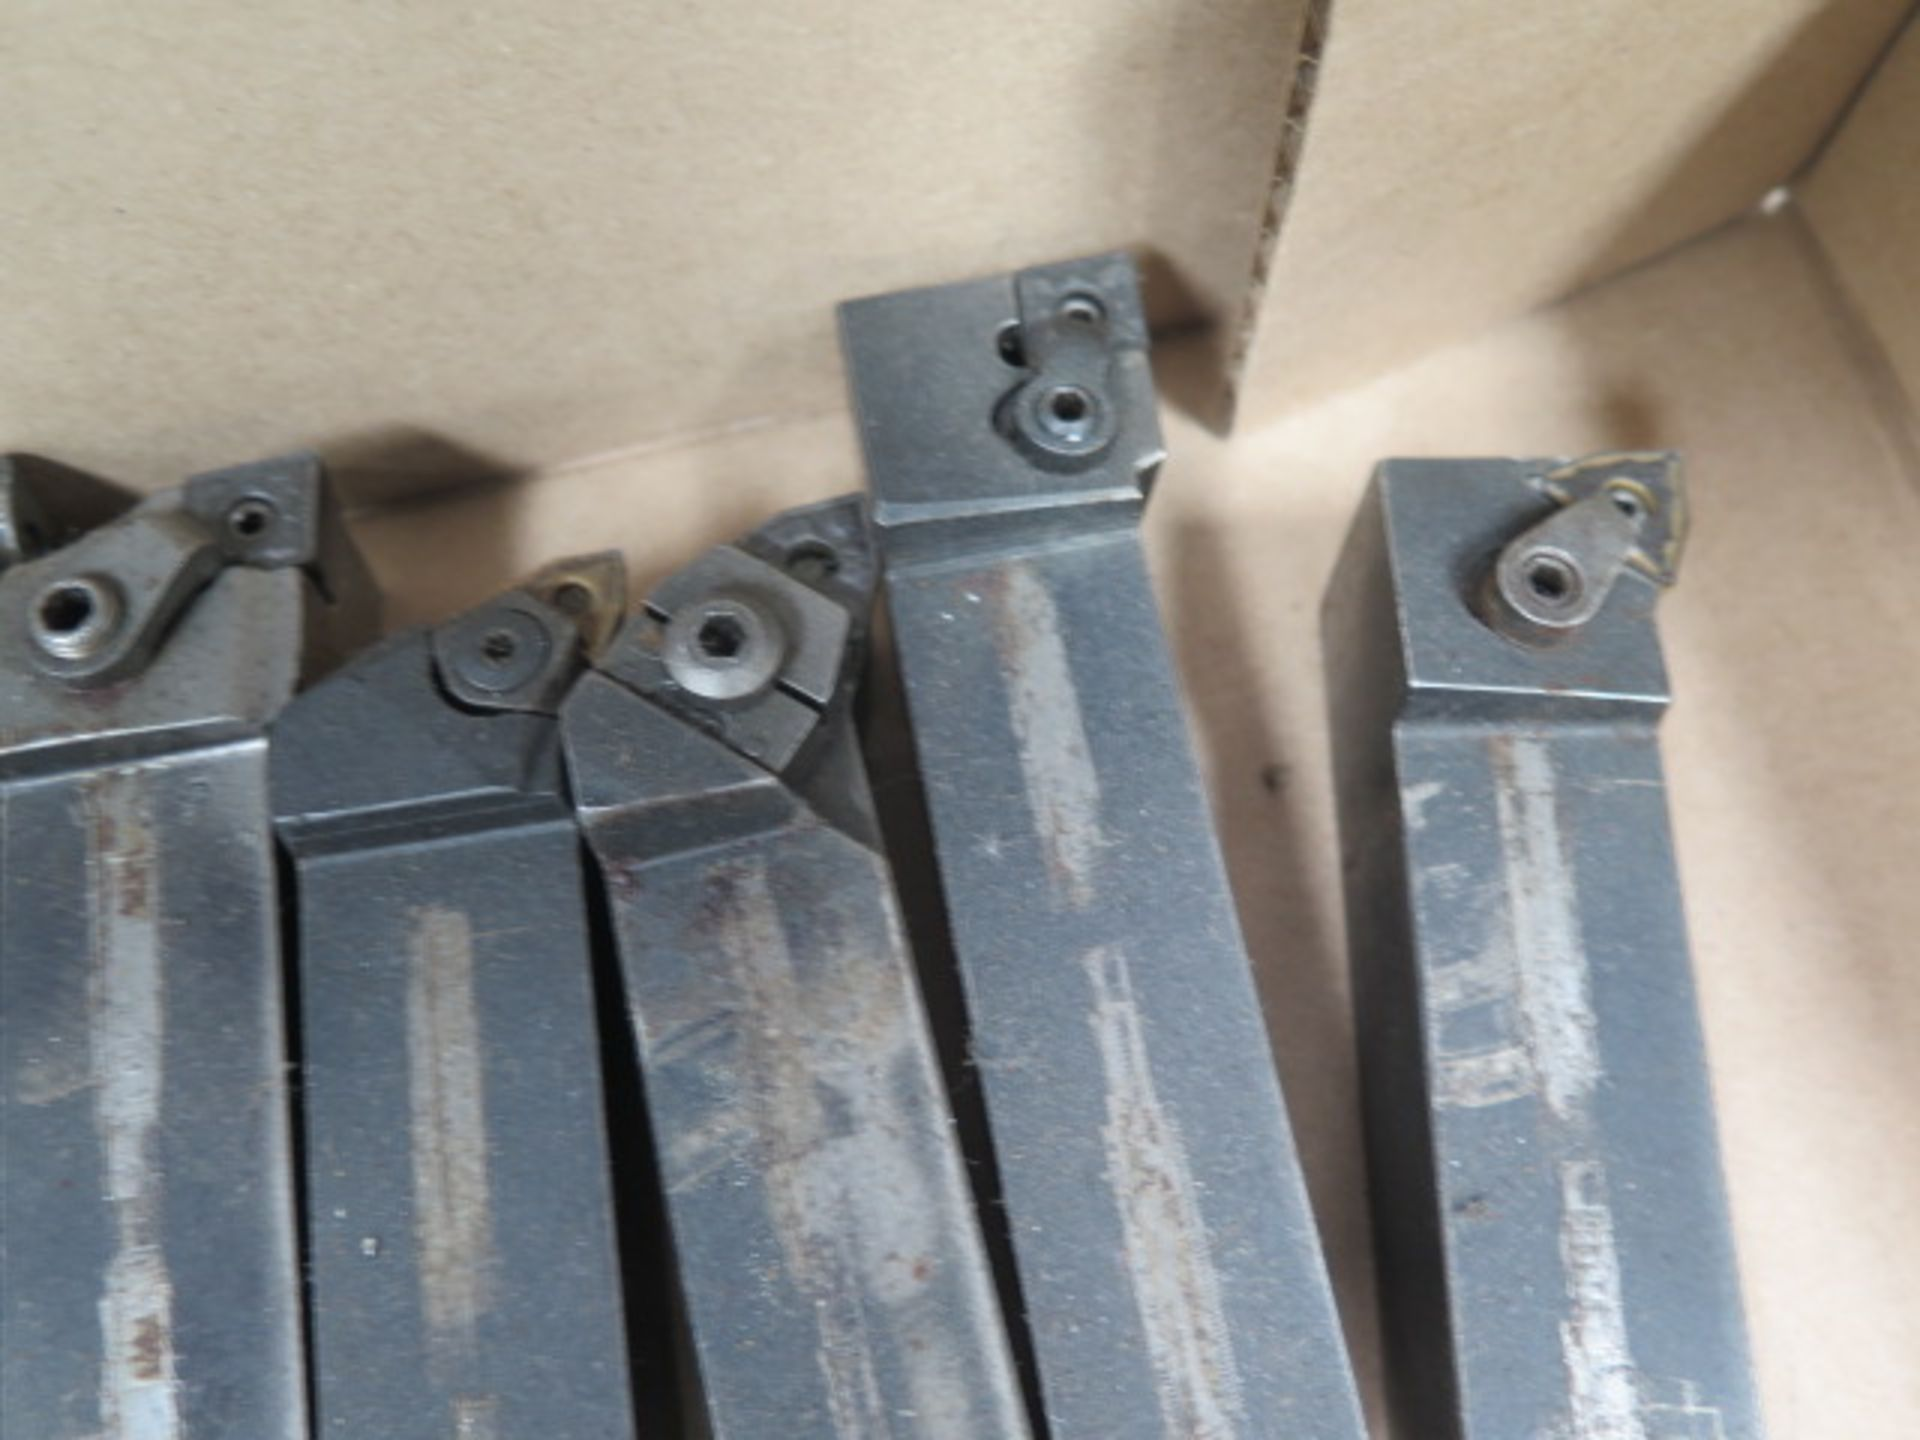 Insert Turning Tools (SOLD AS-IS - NO WARRANTY) - Image 5 of 5